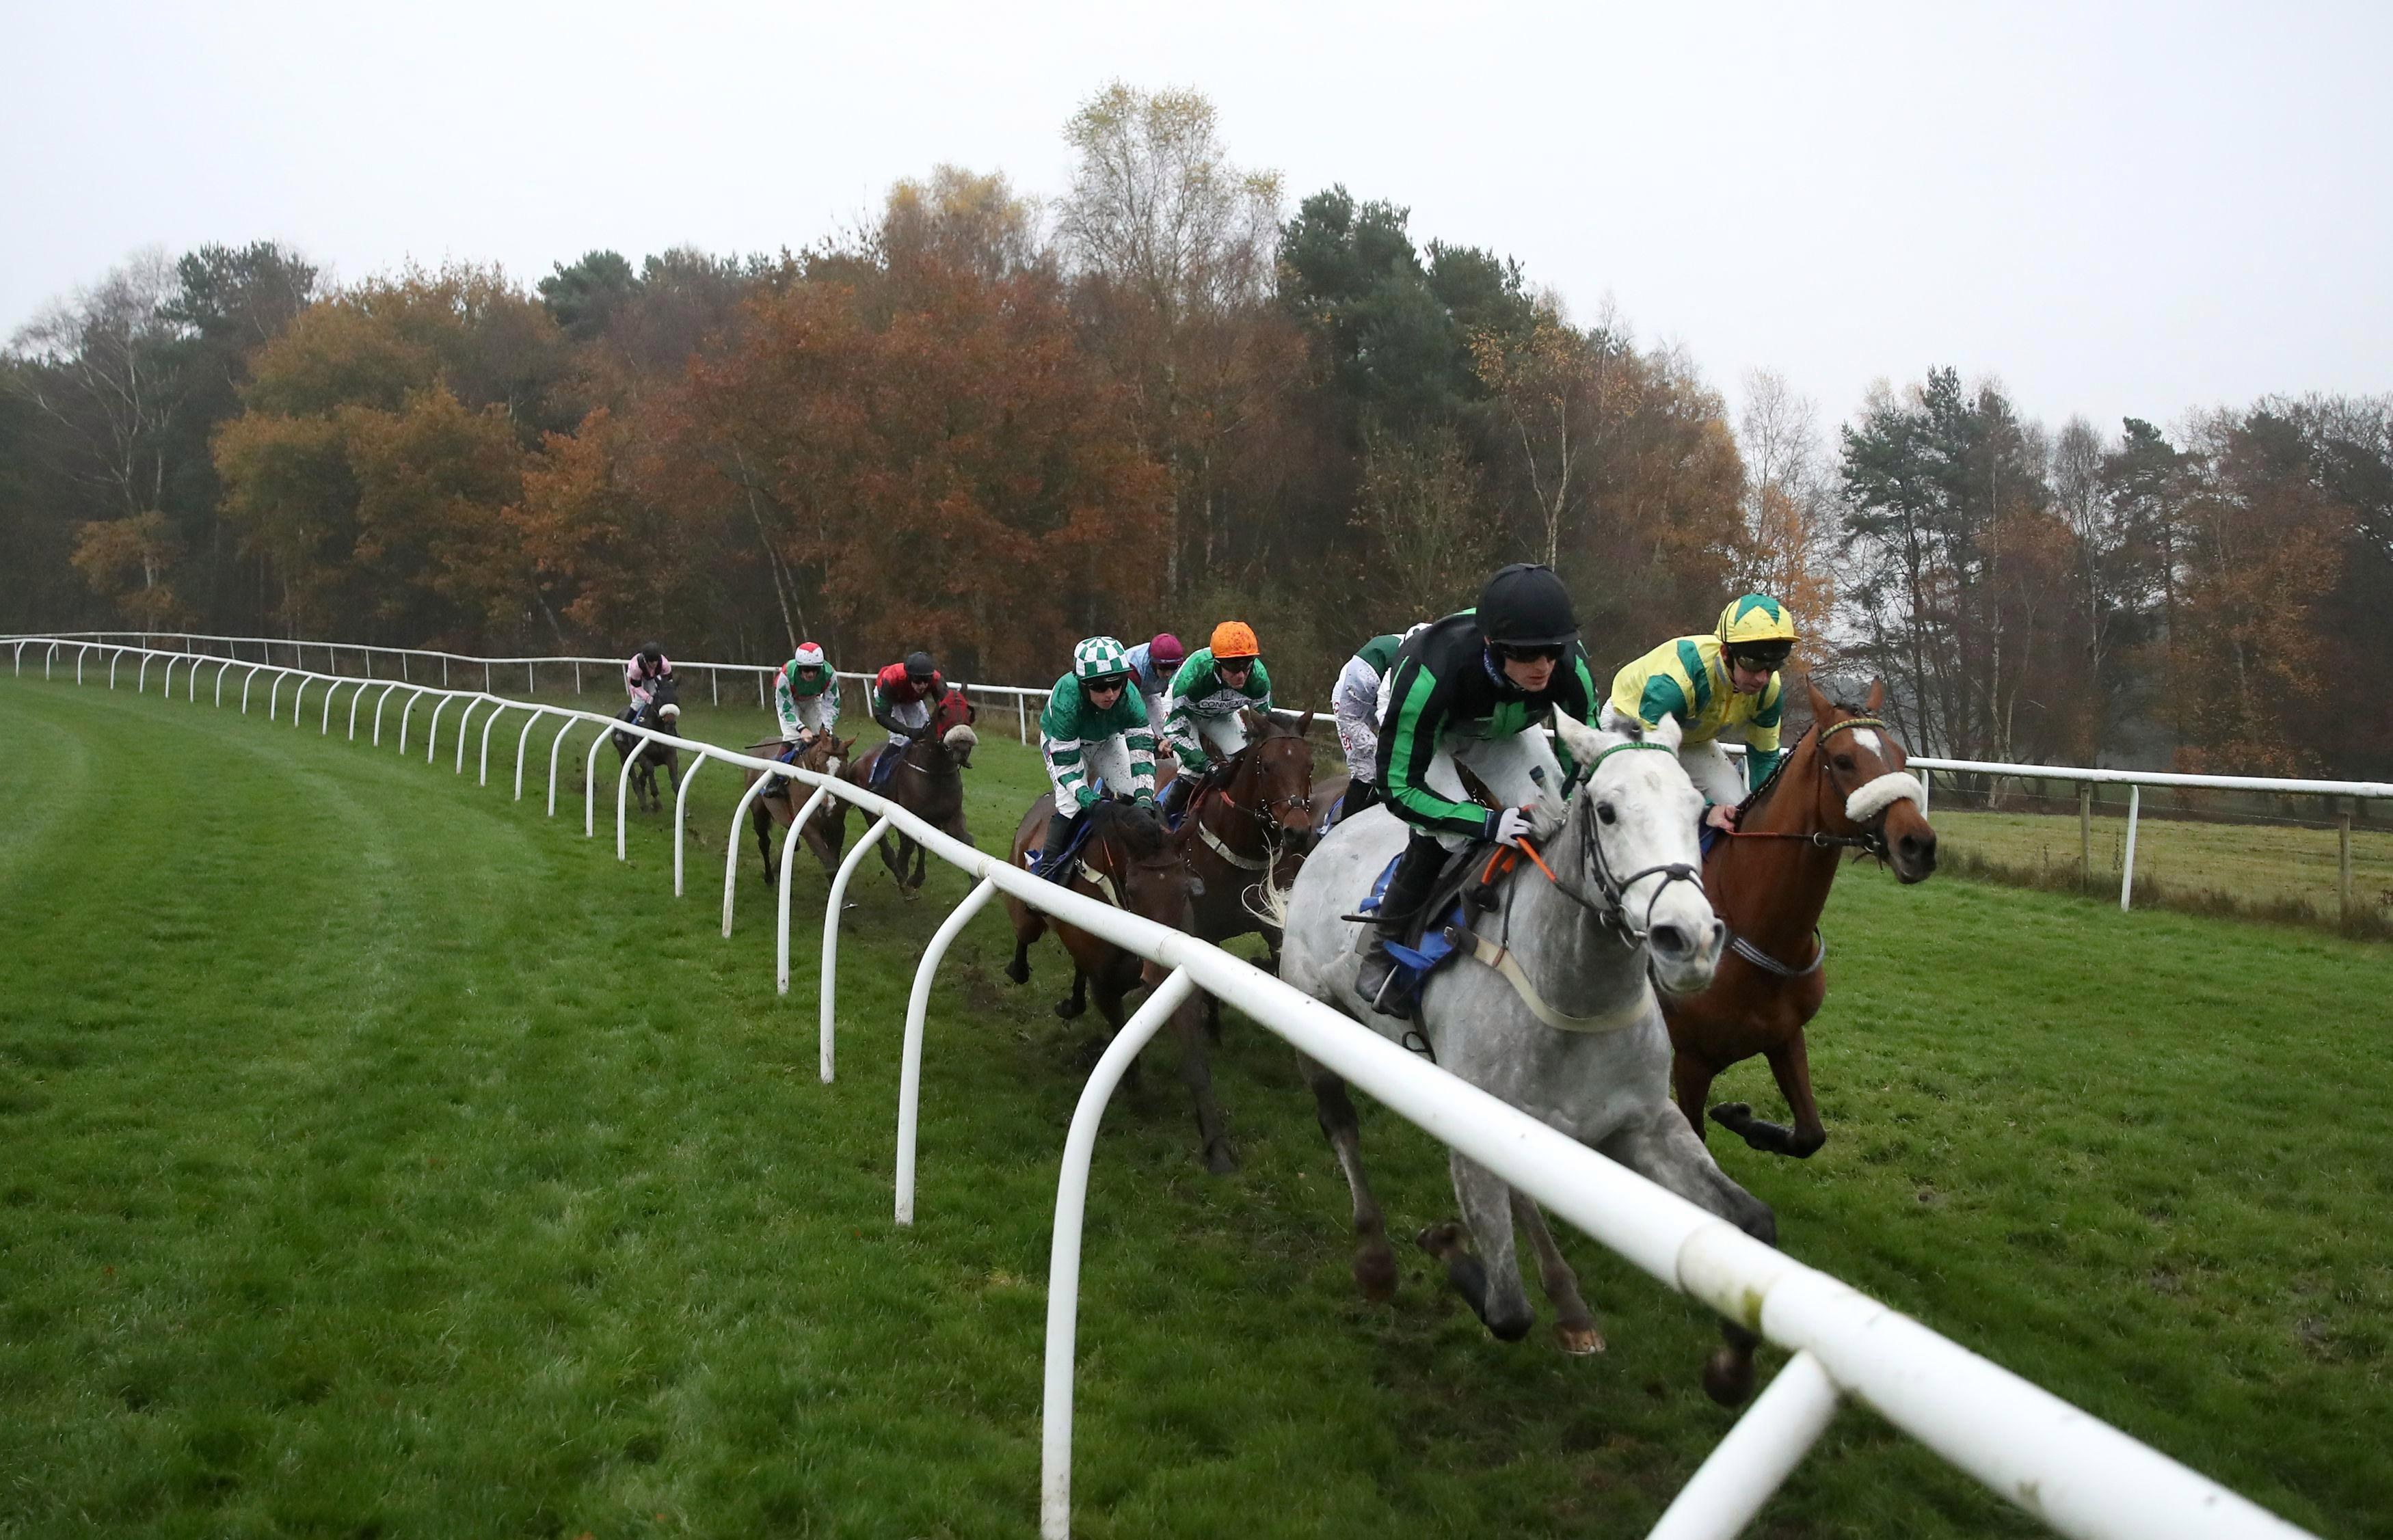 Templegate's racing tips: Market Rasen, Wincanton, Leicester and Chelmsford – Templegate's betting preview for racing on Thursday, December 6